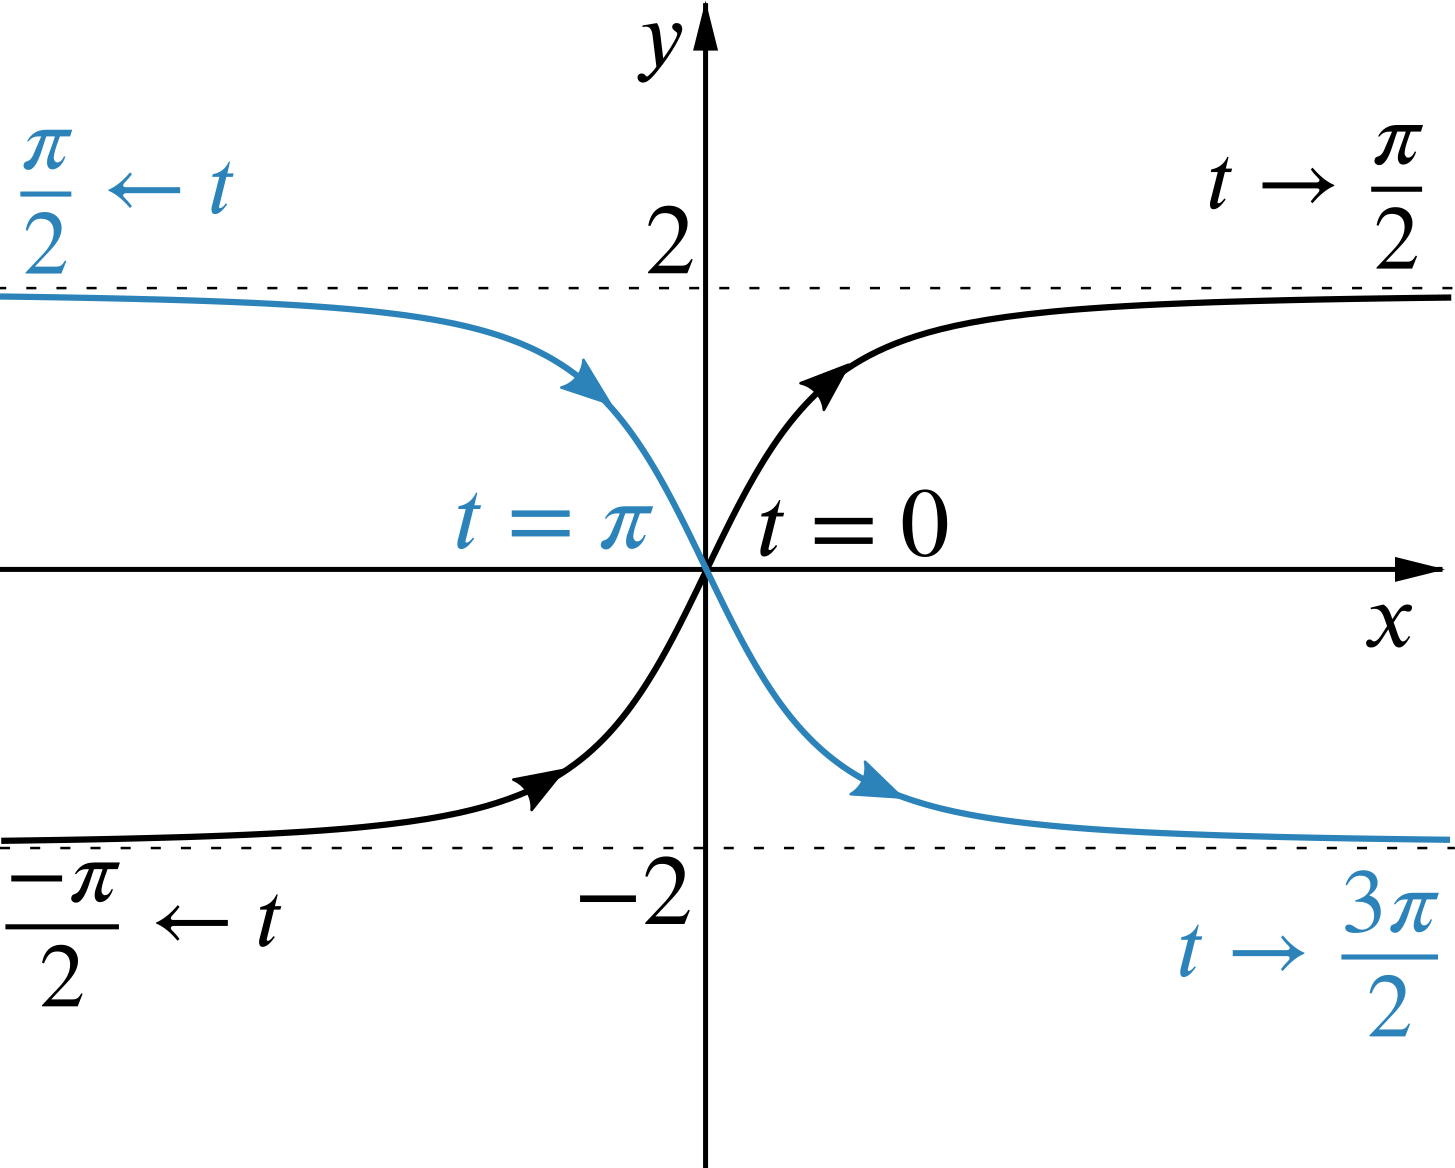 graph of one of the curves